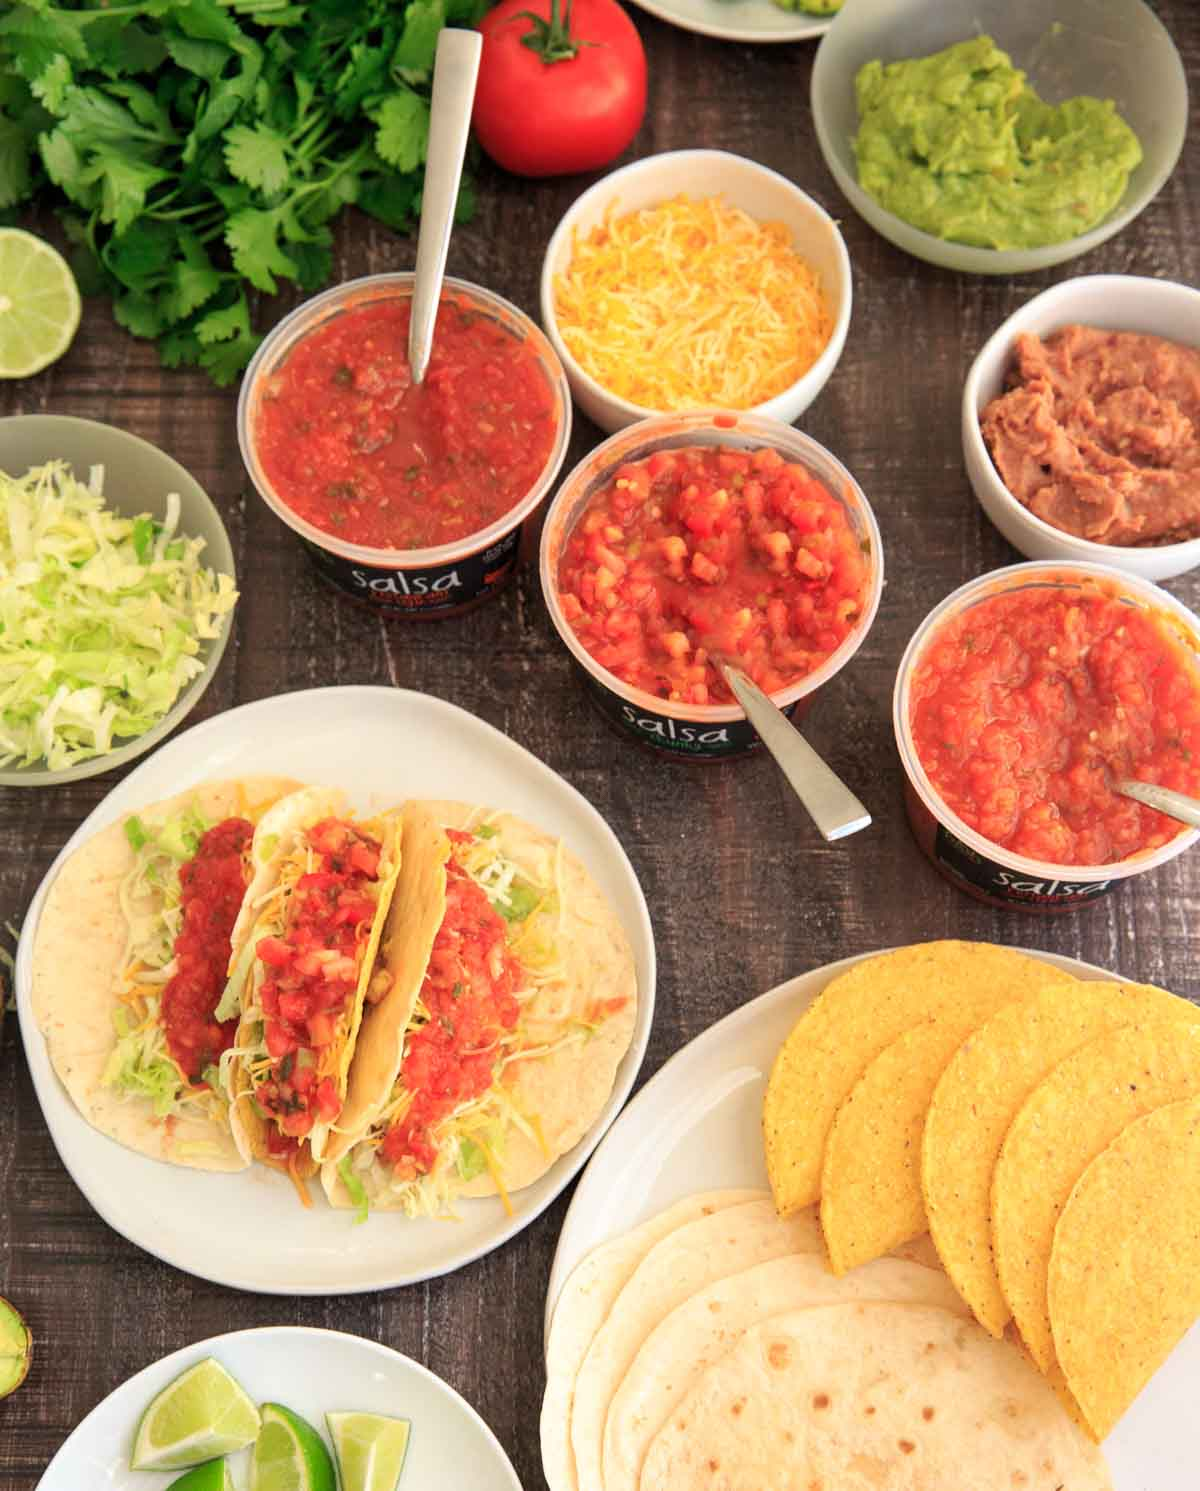 Taco Night with Fresh Cravings Salsa